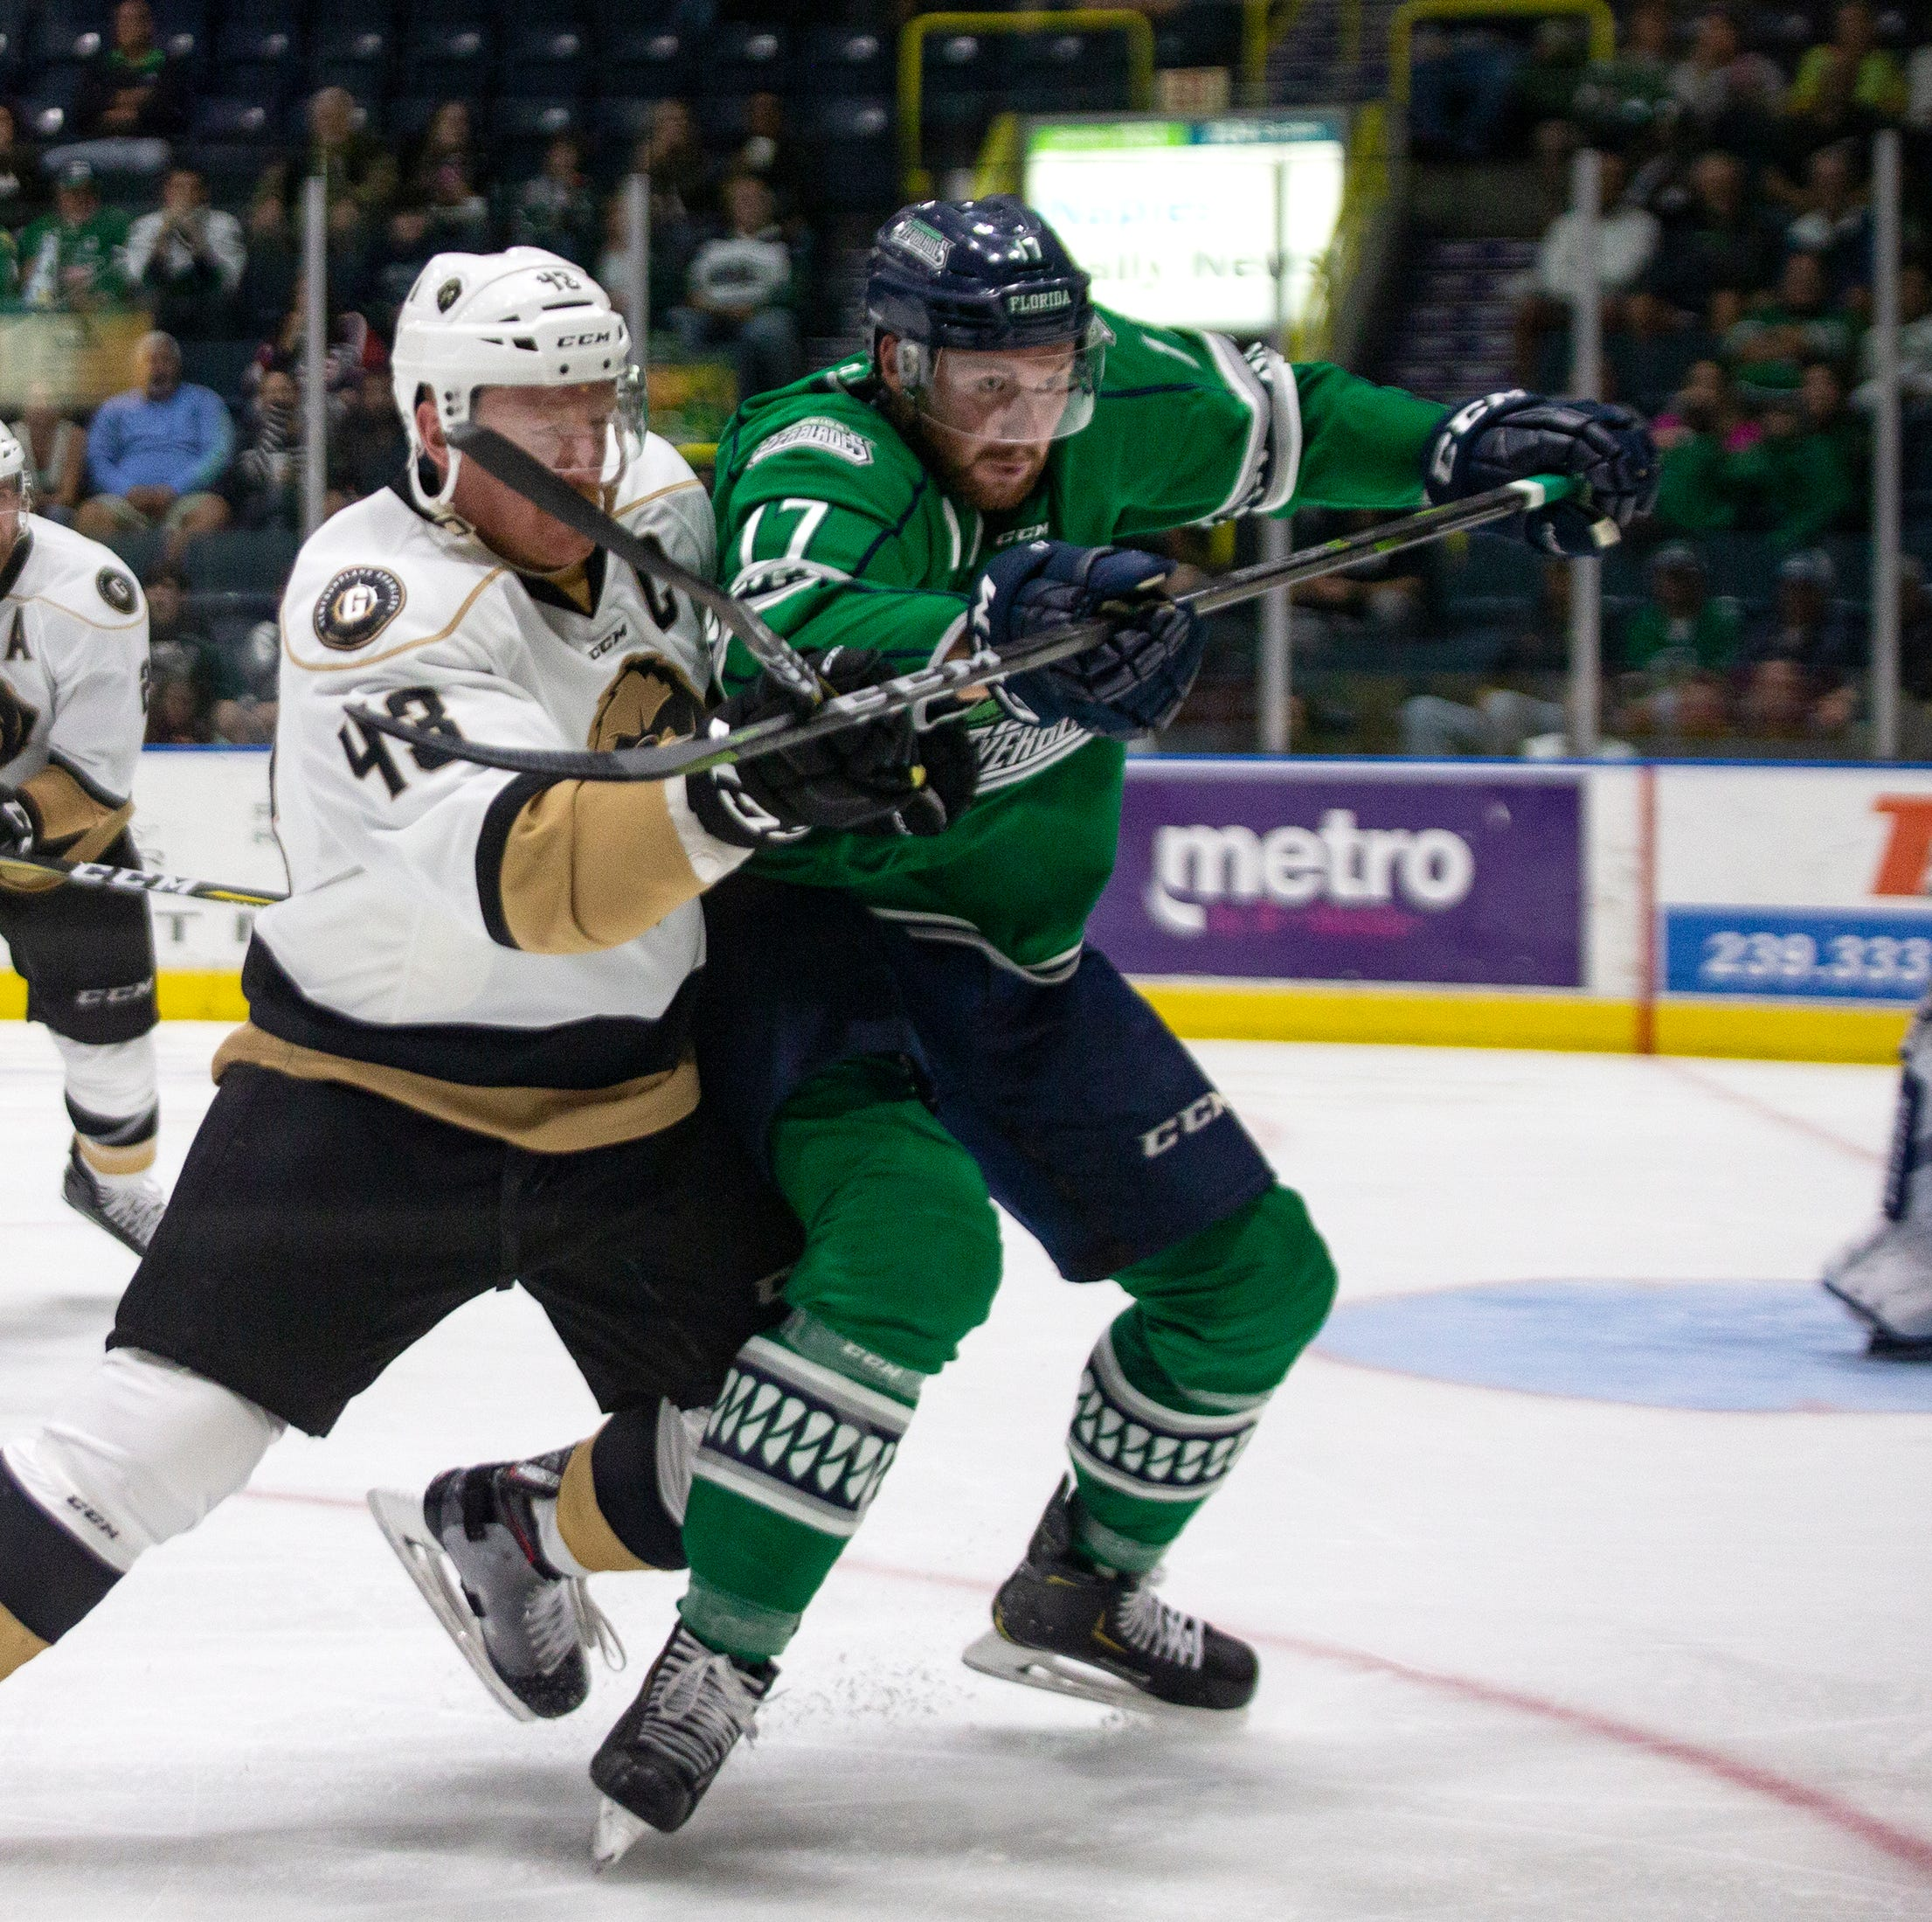 ECHL hockey: Growlers erupt in second period, blast Everblades to take 2-0 series lead